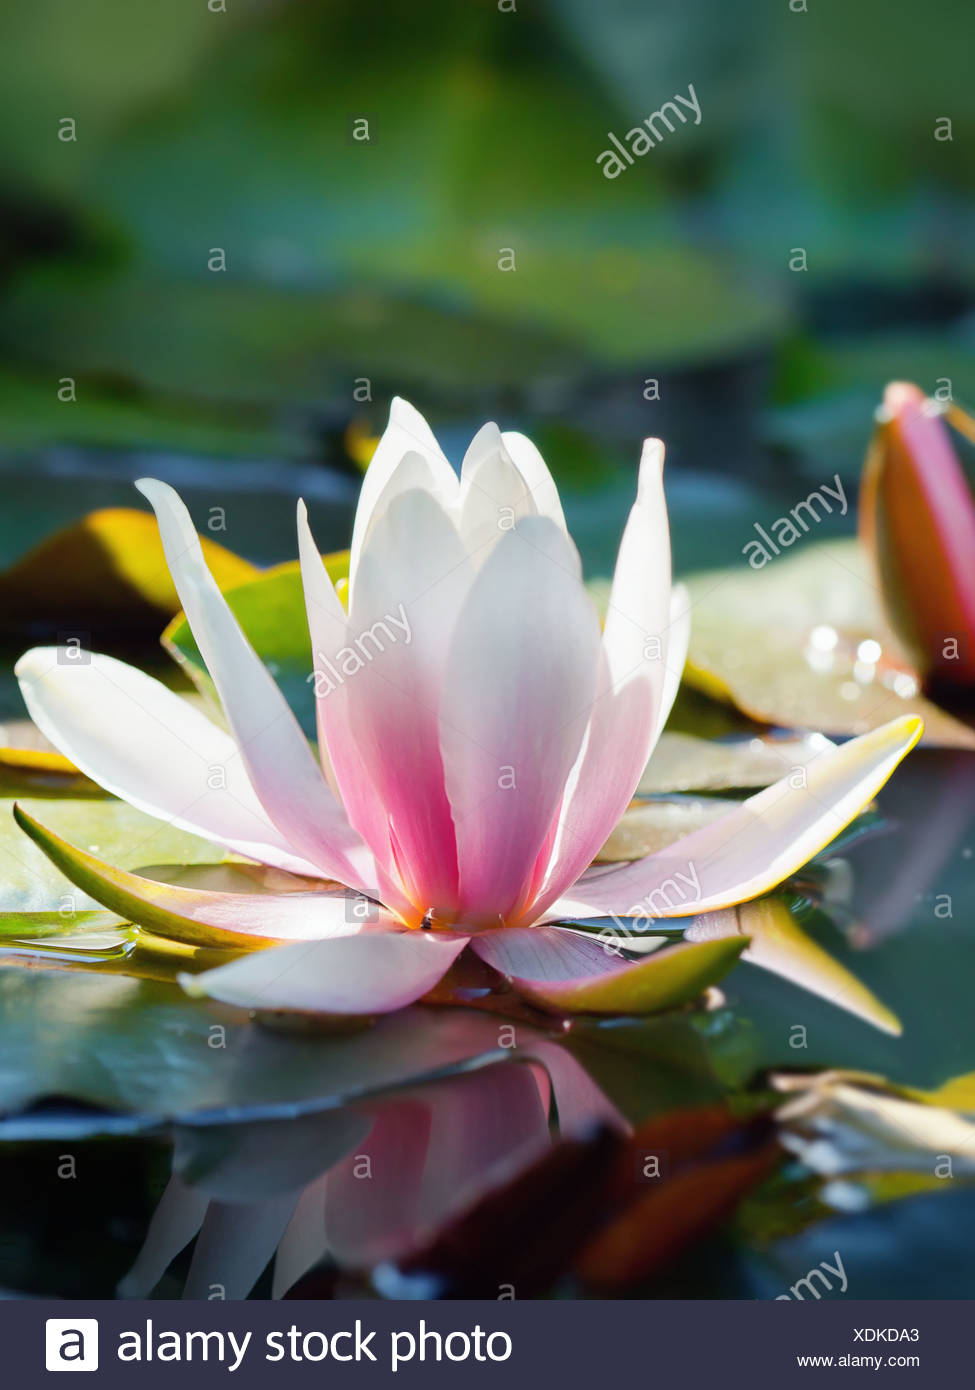 Beautiful Lotus Flower And Background Stock Photo 283783979 Alamy